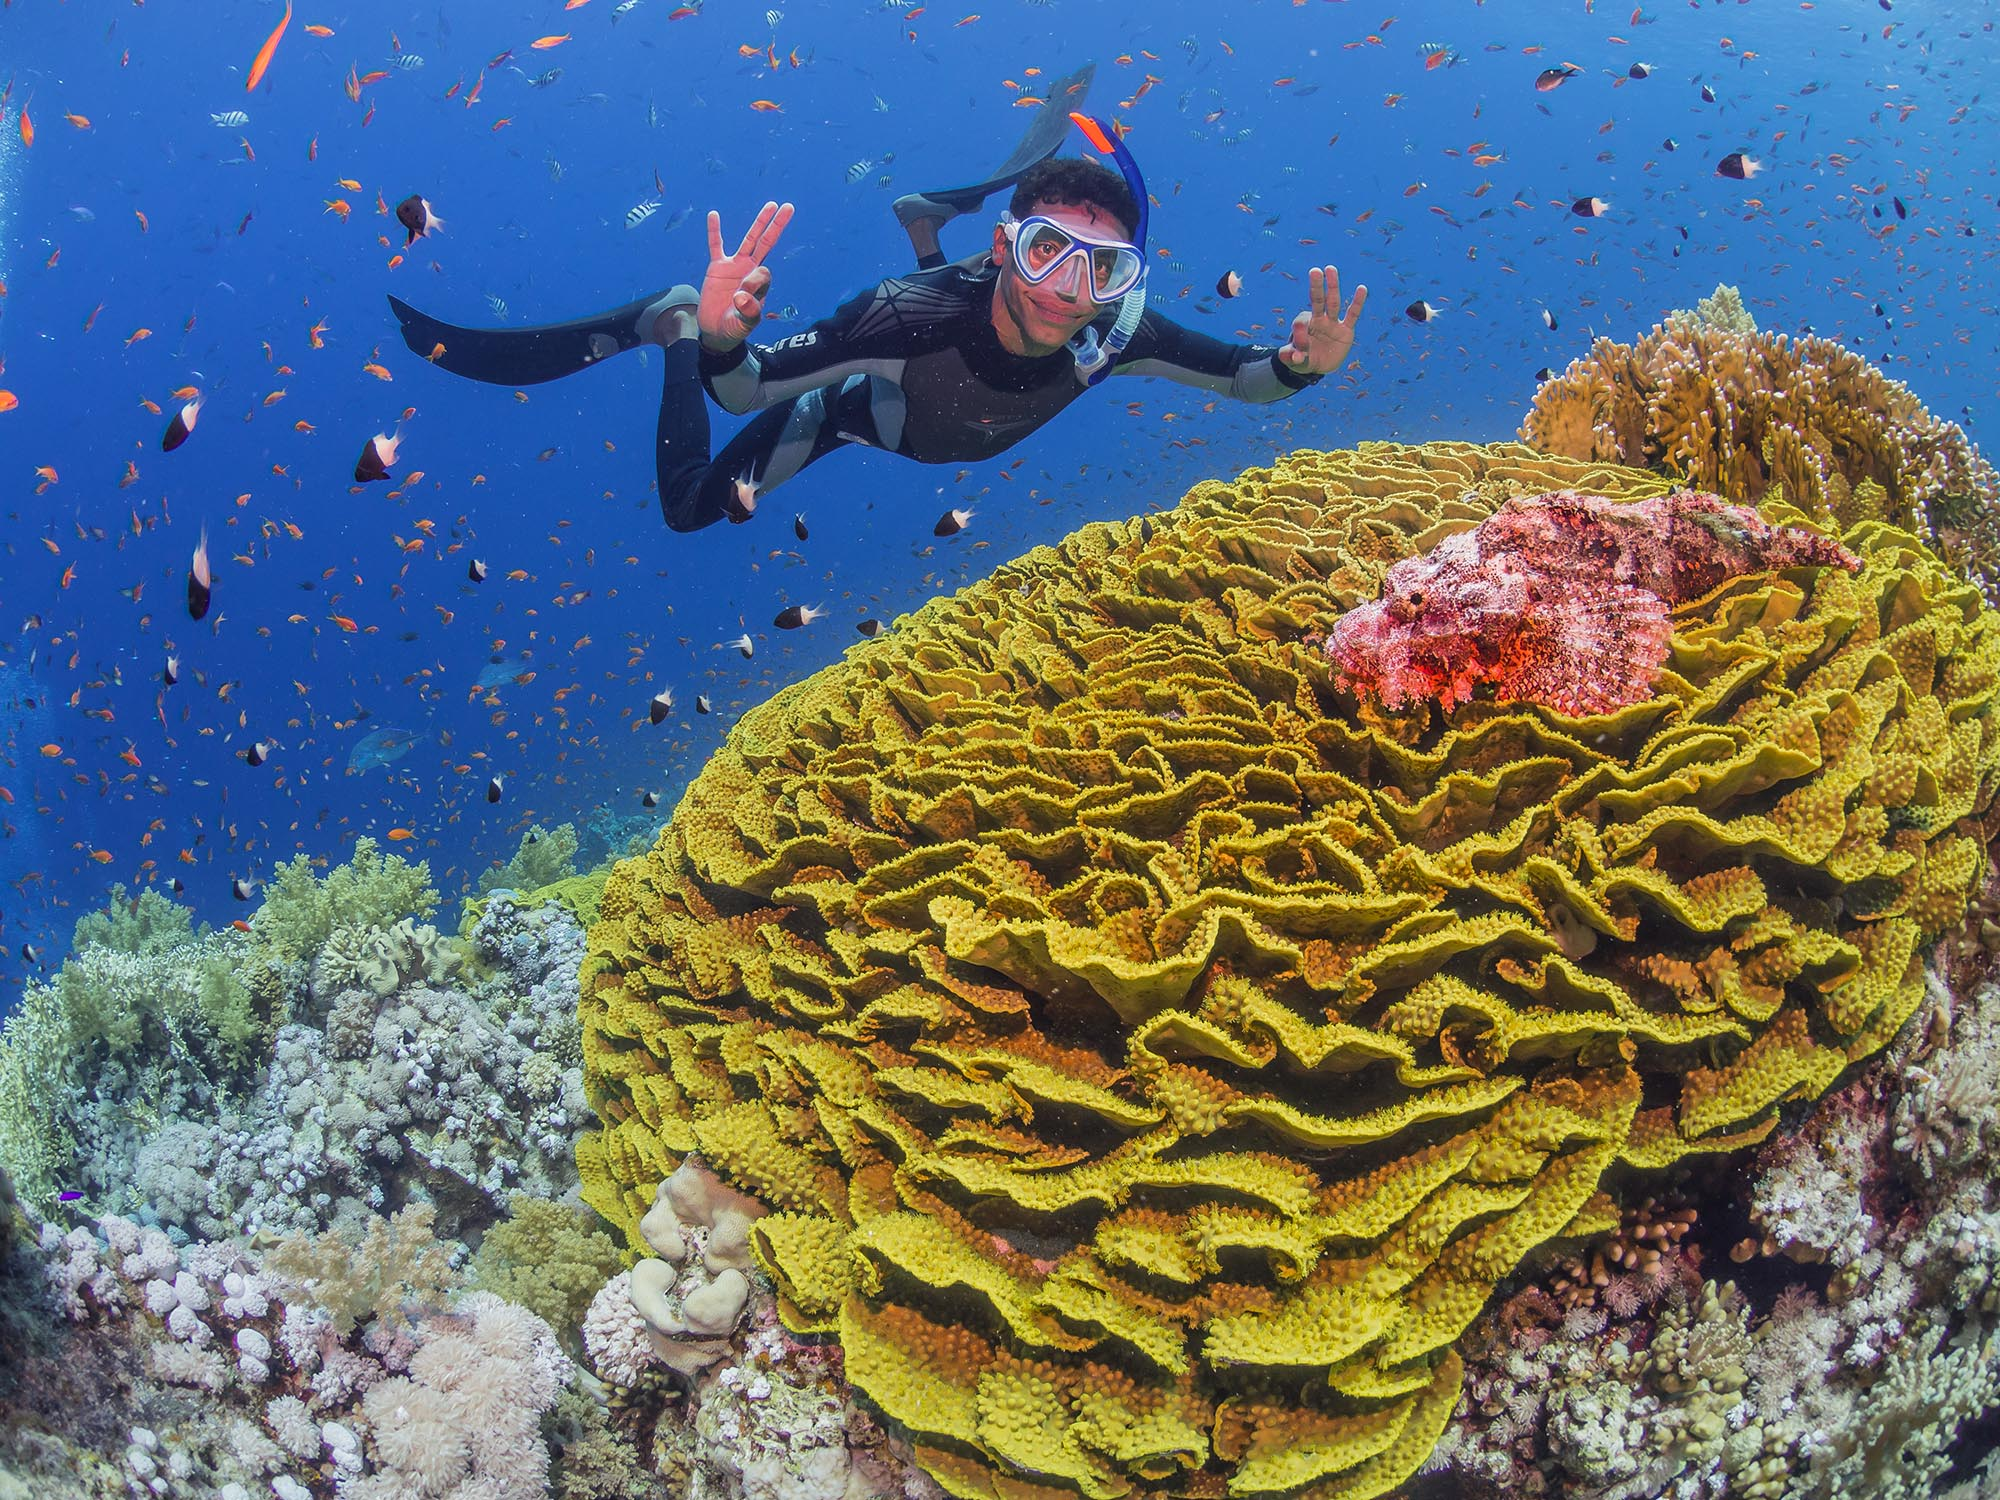 snorkeler posing next to yellow coral hread